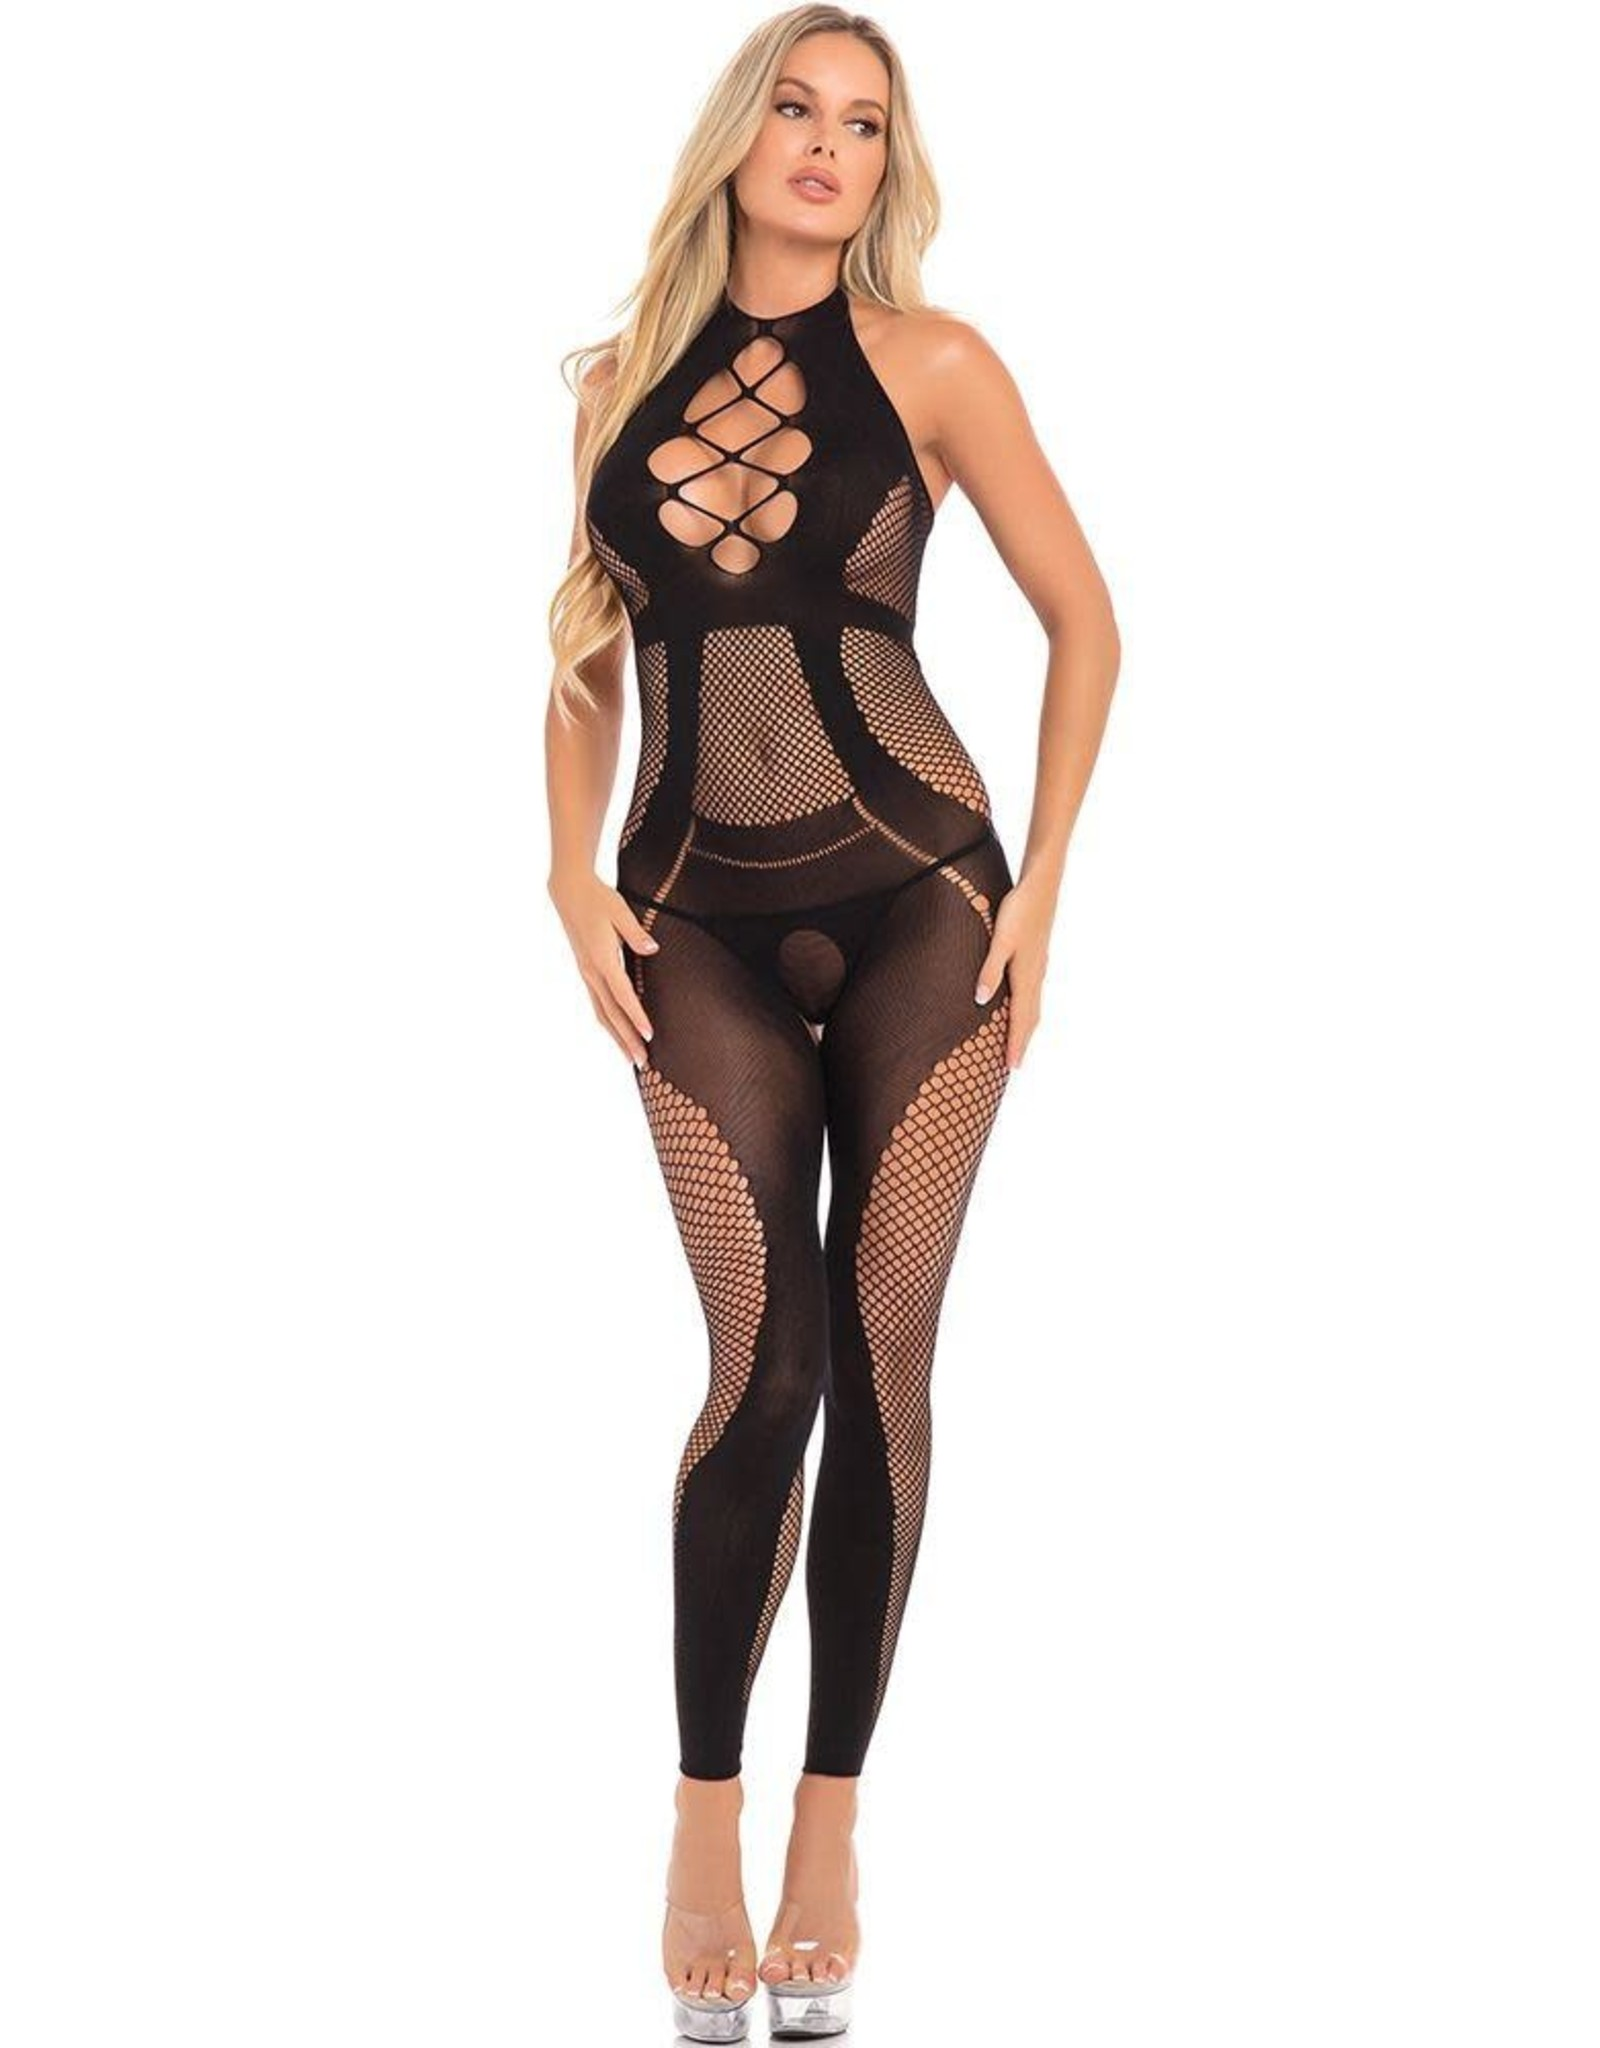 PINK LIPSTICK - ON RAILS FOOTLESS BODYSTOCKING - S/M